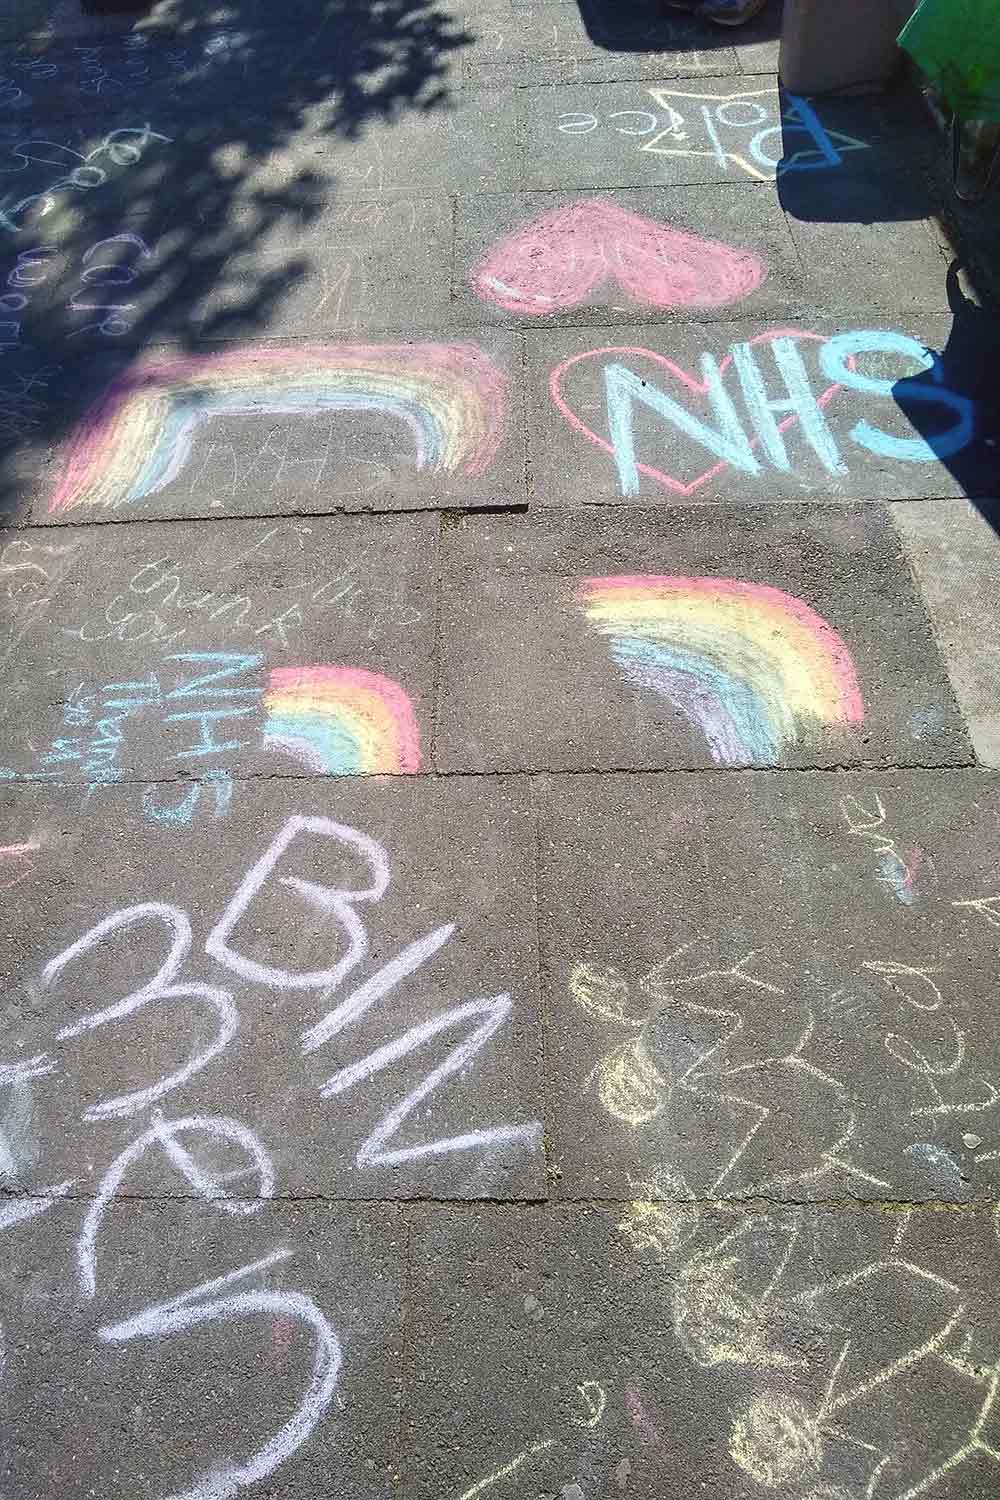 Children's chalk drawings on pavement during lockdown